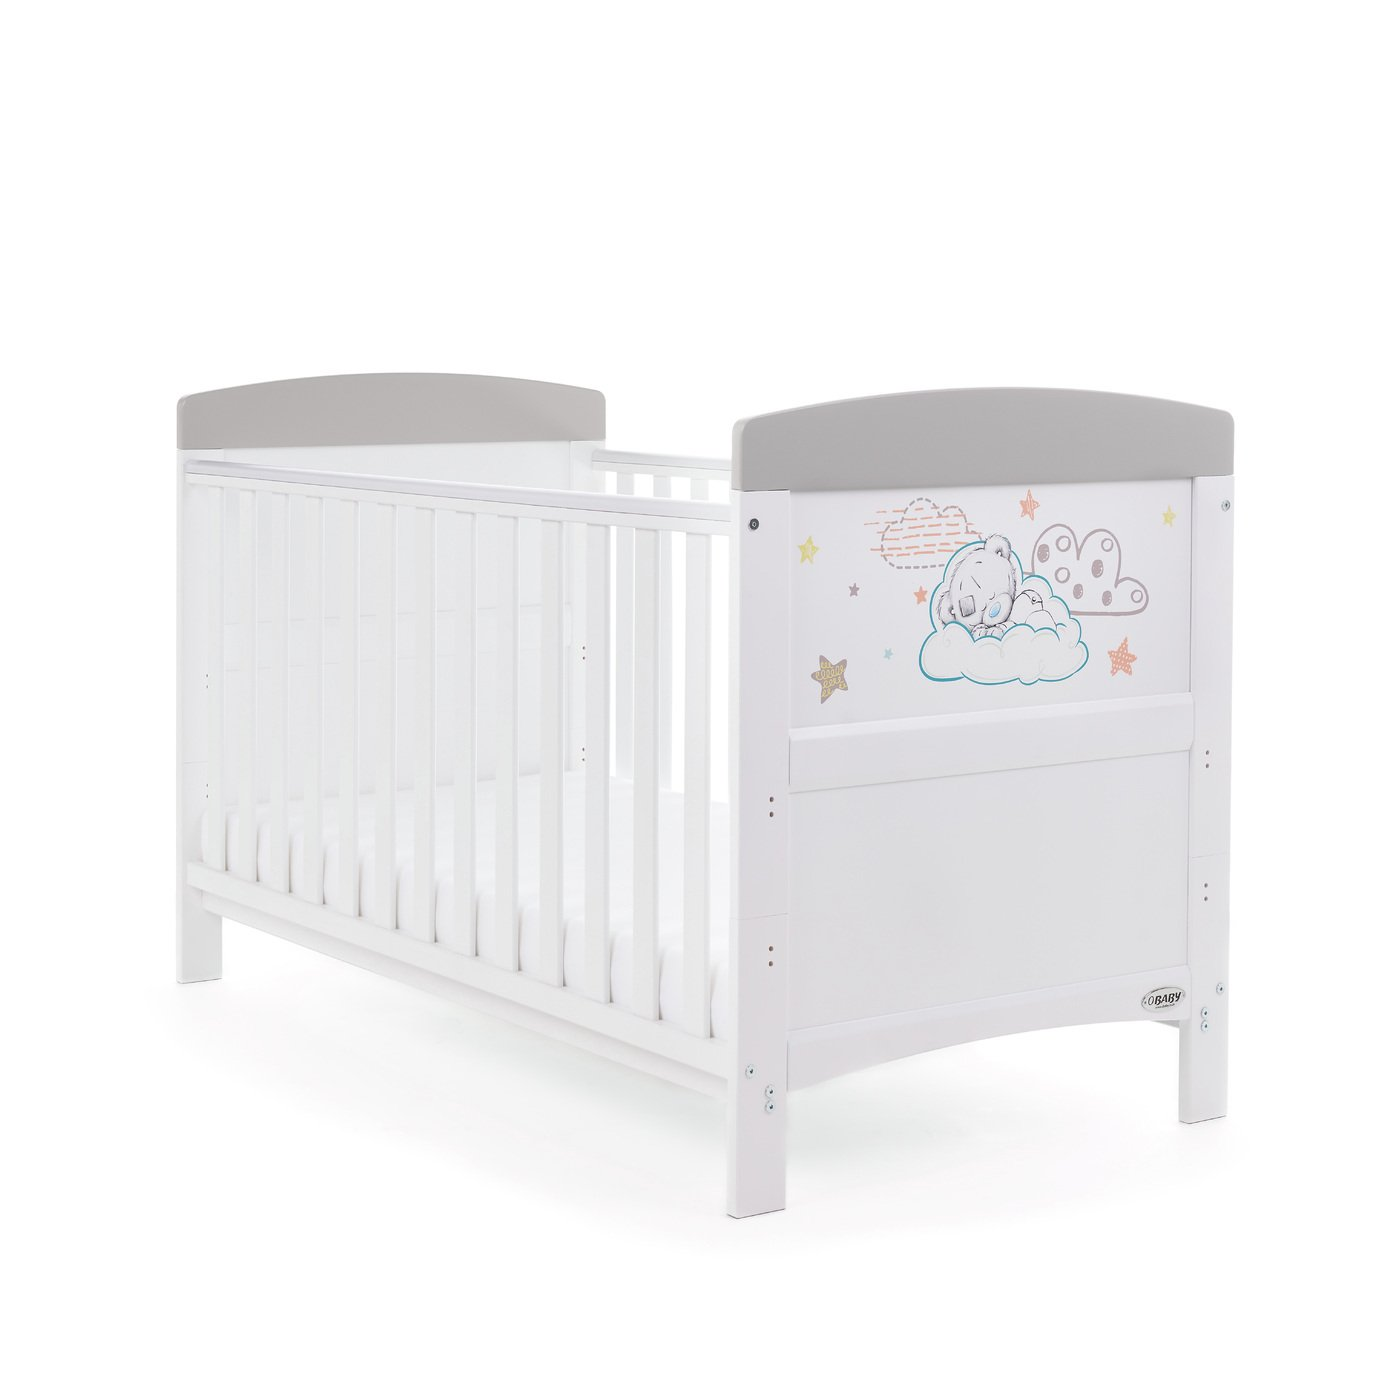 Image of Tiny Tatty Teddy Cot Bed - Grey